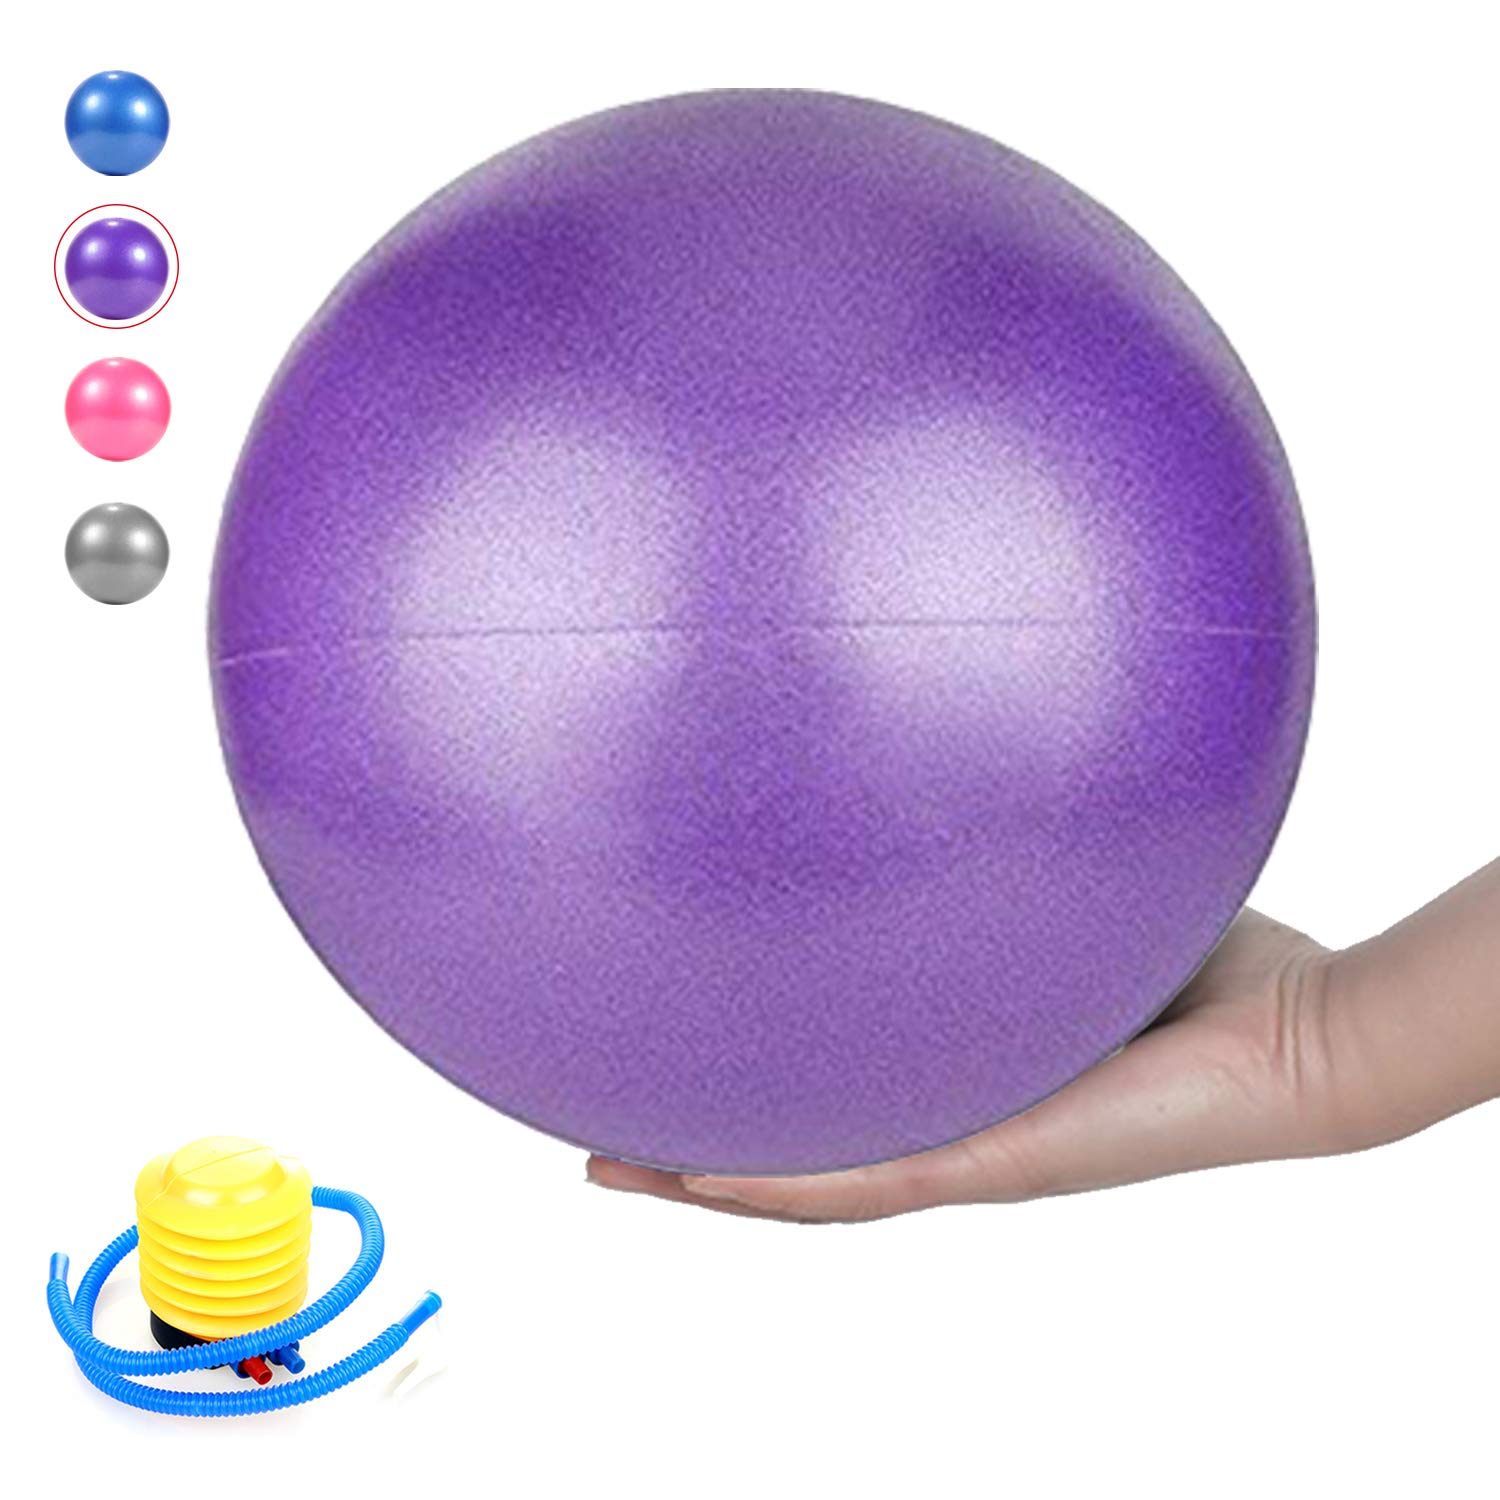 MICOK Pilates Ball, Barre Ball, Mini Exercise Ball, 9 Inch-Small Bender Ball for Pilates, Yoga, Core Training and Physical Therapy, Anti Burst Slip Resistant Balance Ball with Quick Foot Pump